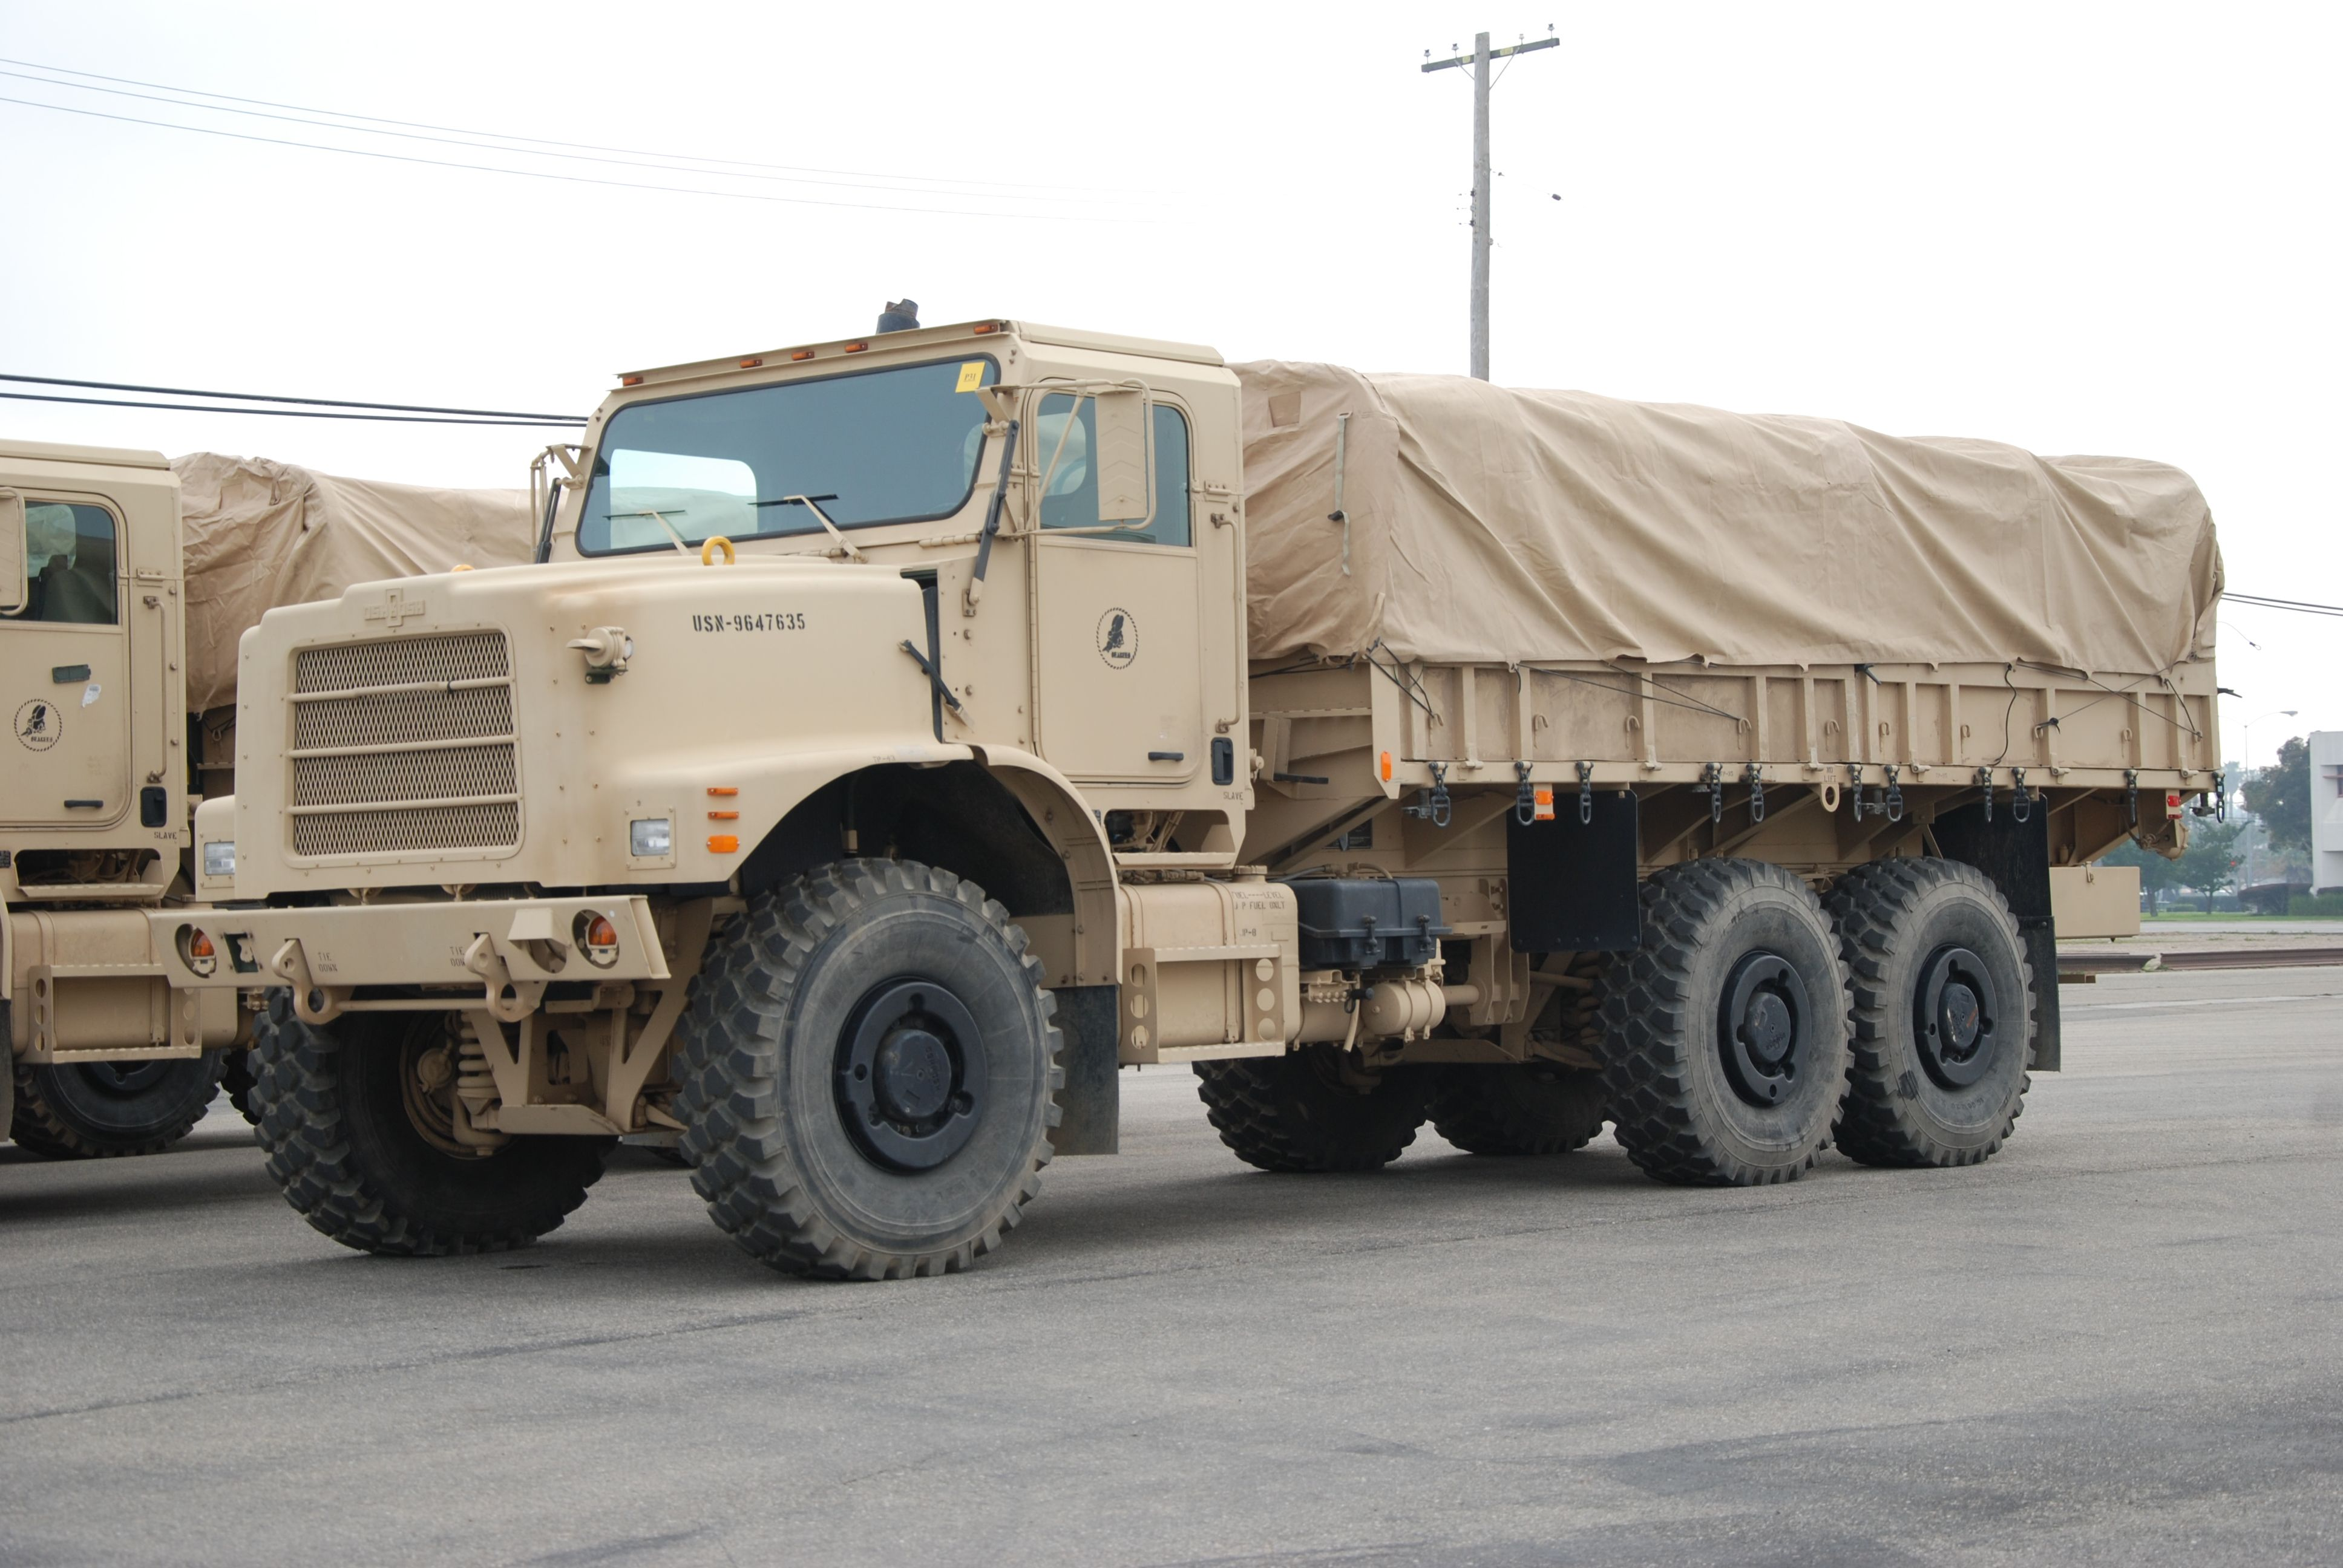 Oshkosh MTVR truck | Army vehicles, Vehicles, Armored truck